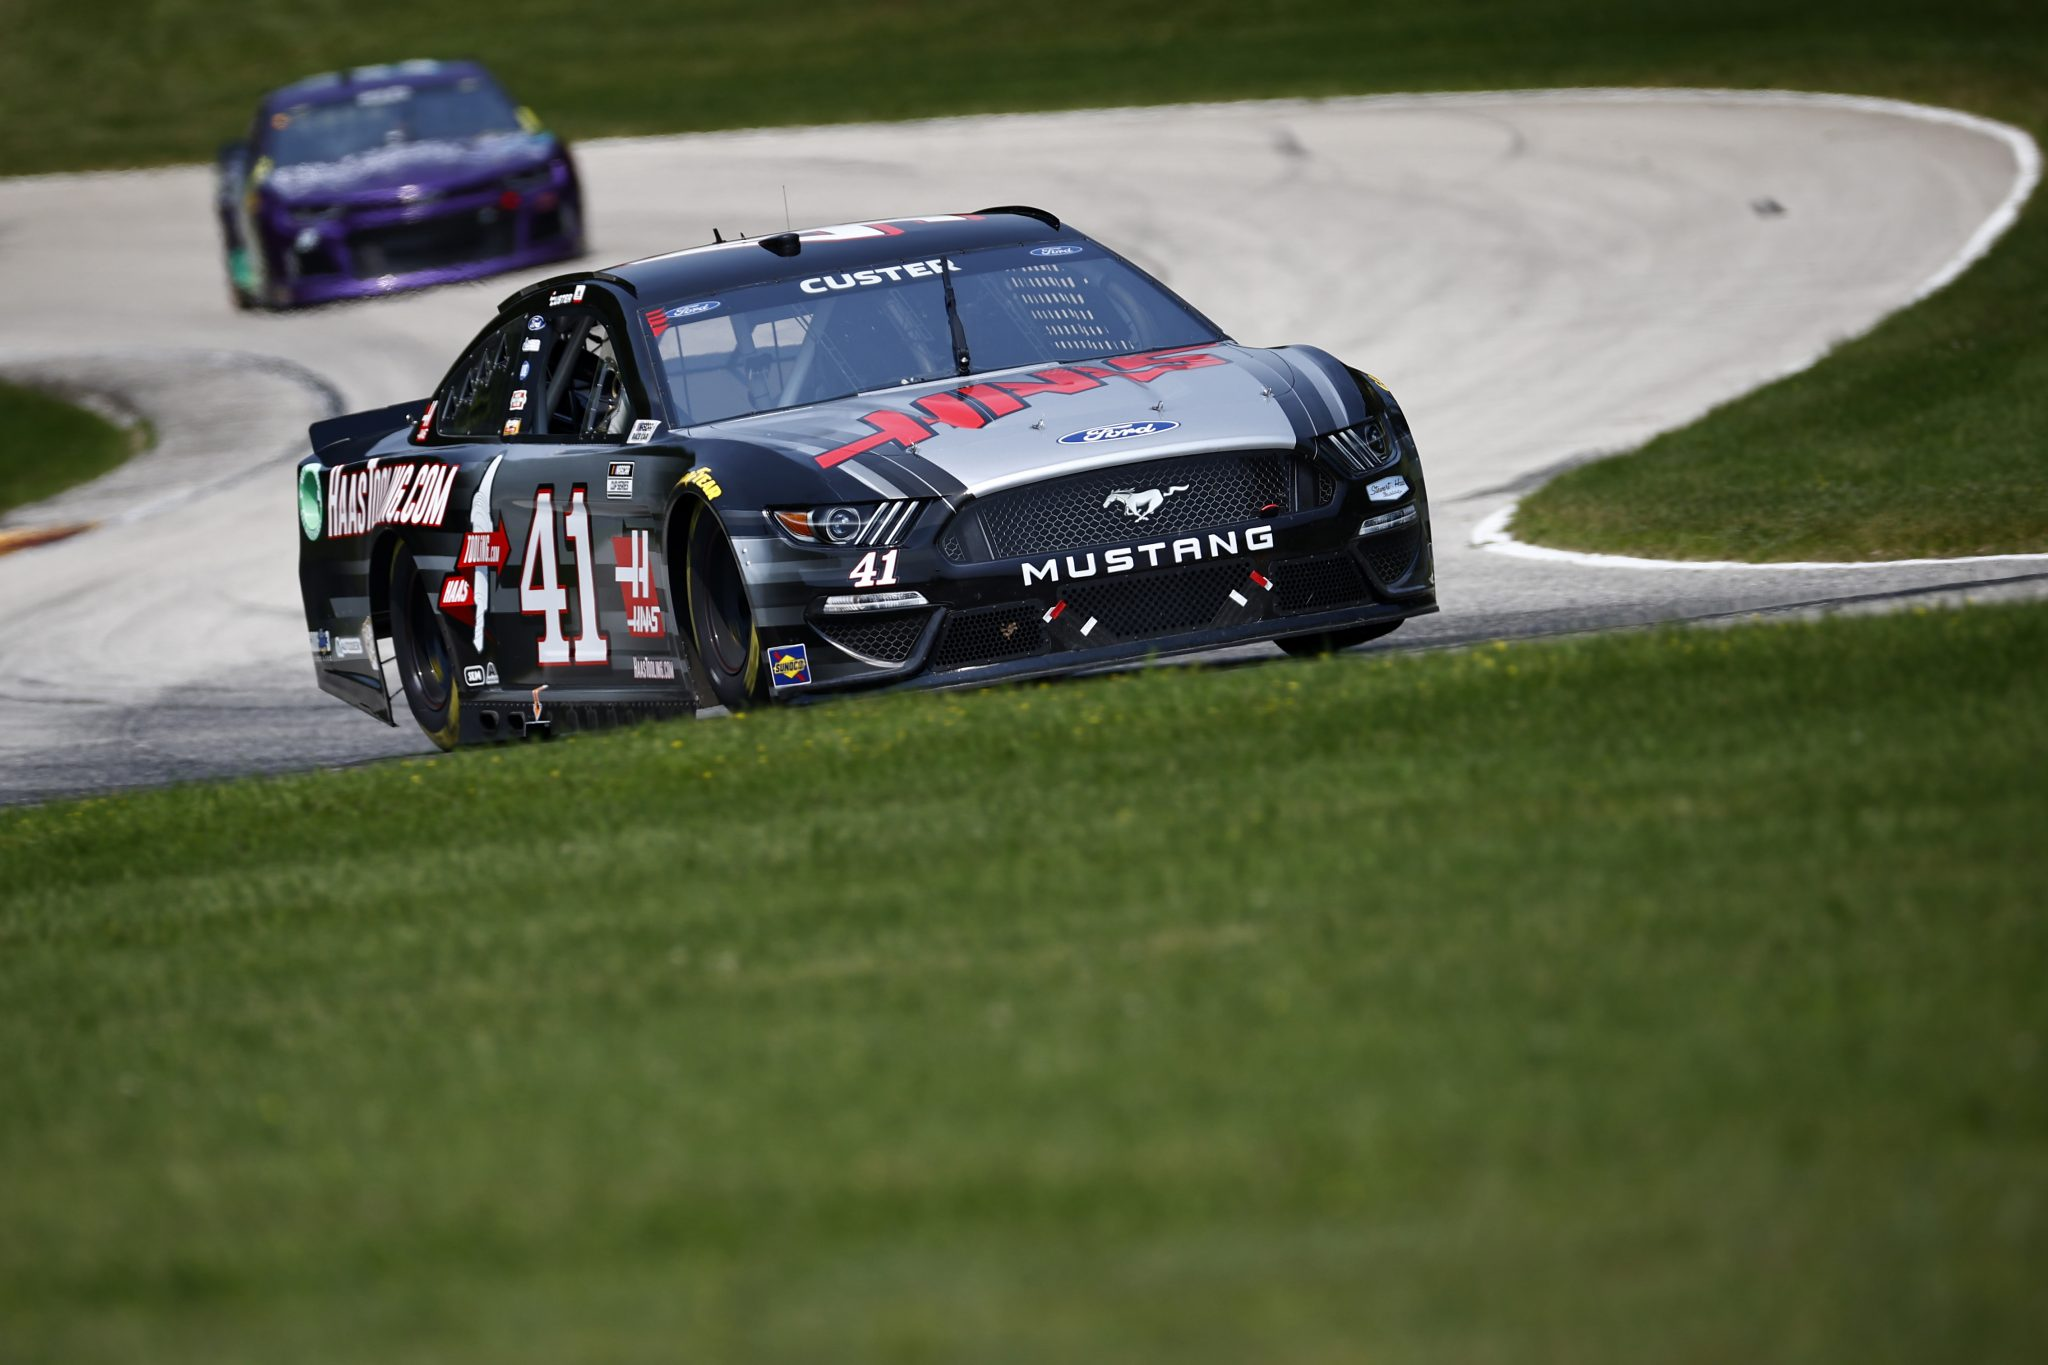 ELKHART LAKE, WISCONSIN - JULY 03: Cole Custer, driver of the #41 HaasTooling.com Ford, drives during practice for the NASCAR Cup Series Jockey Made in America 250 Presented by Kwik Trip at Road America on July 03, 2021 in Elkhart Lake, Wisconsin. (Photo by Jared C. Tilton/Getty Images) | Getty Images